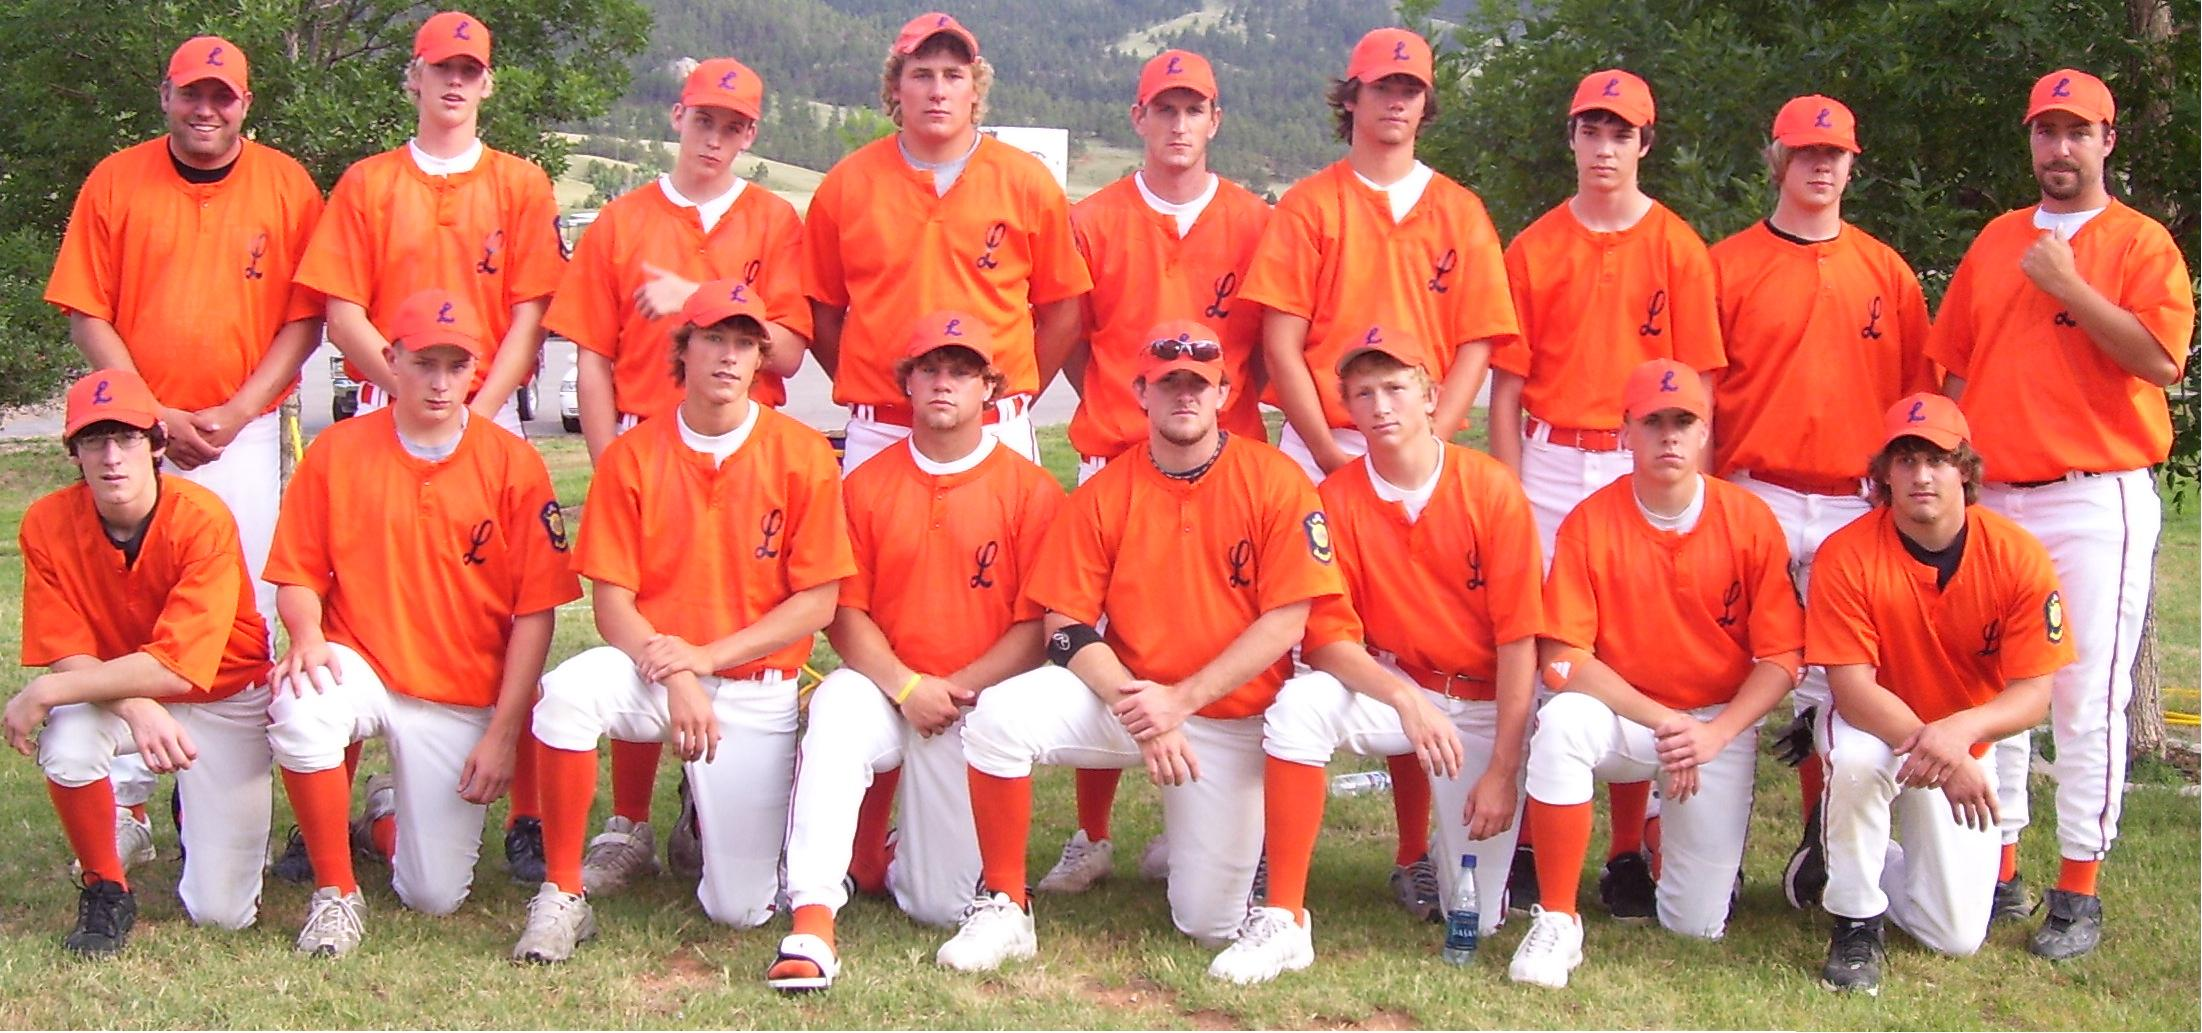 From Left to Right: Top Row- Coach Kruse, Coach Storo, David Moerman, Justin Foss, DJ Kruger, Justin Vietor, Andrew Grotewold, Allan Wright, Coach Kirchner. Bottom Row: Levi (louie) Parker, Michael Bridgford, Andy Koosman, Brodie Mayfield, Cody Parker, Dustin Hanisch, Josh Kirchner, Dereck Straatmeyer.